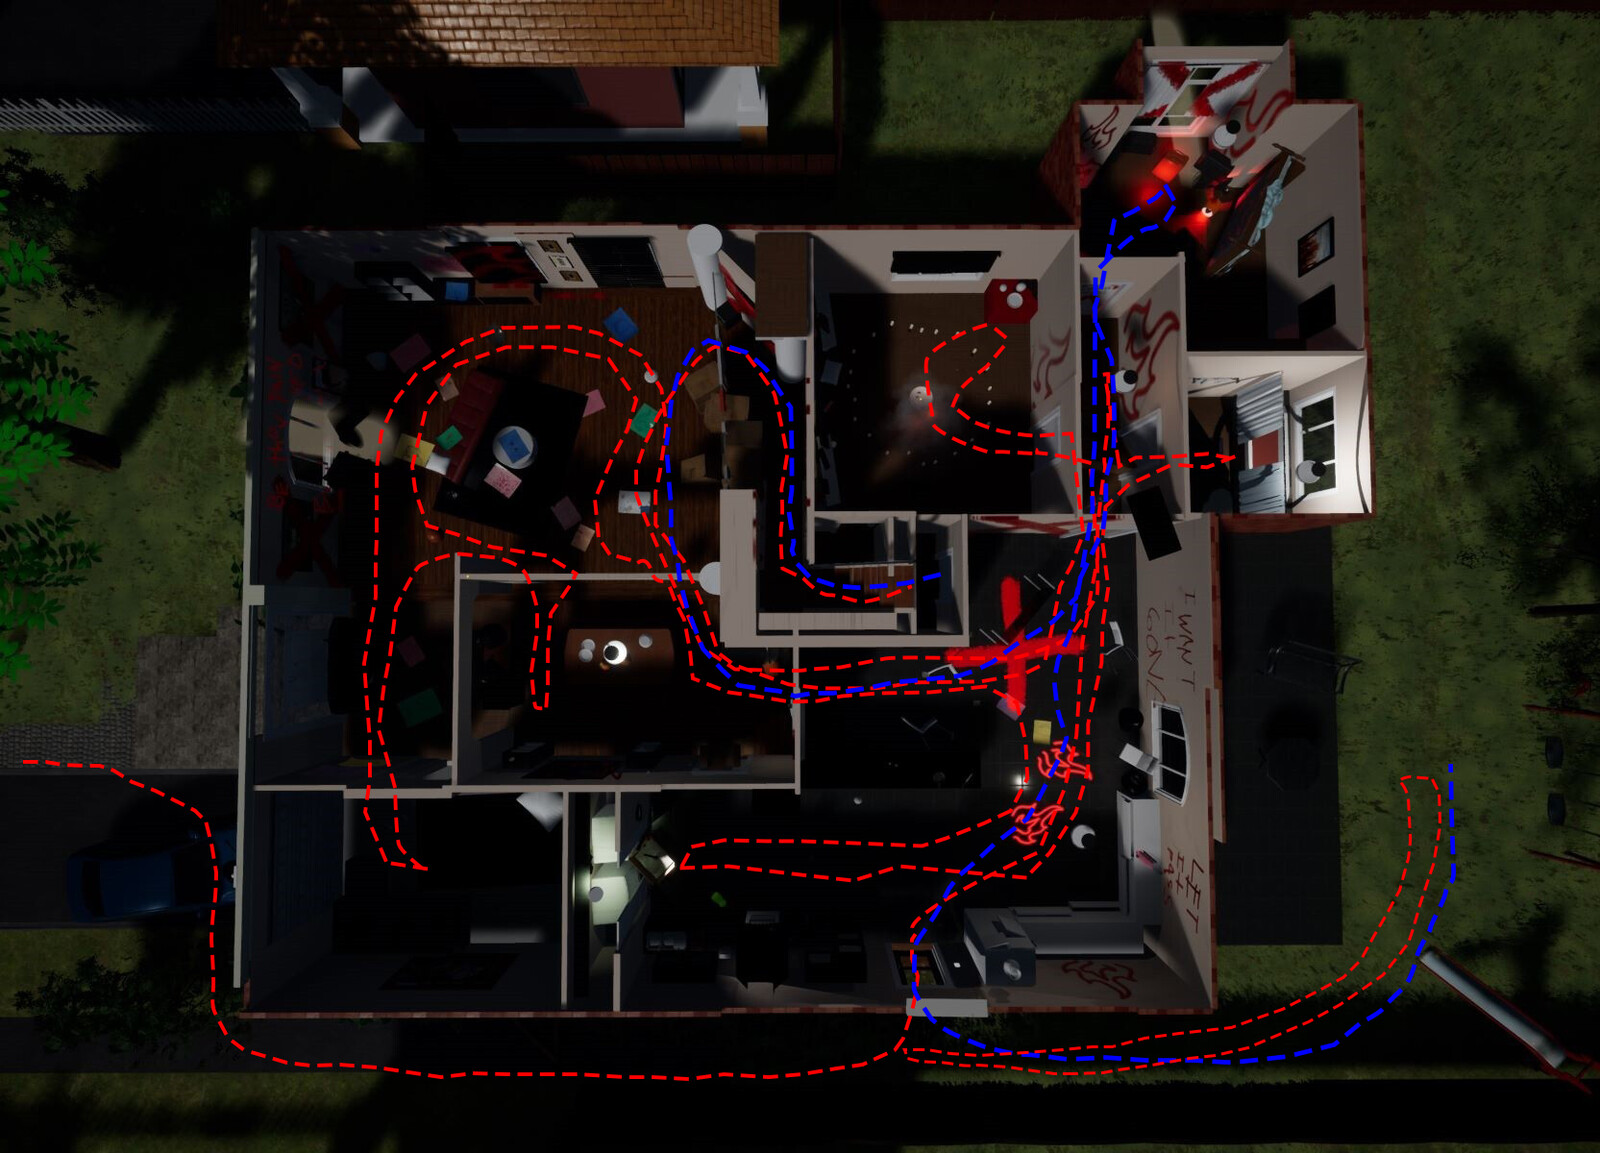 Movement utilized the hub like spaces repeatedly for different sections of the exploration quest. The red line is the key gathering before the entering the attic, the blue line is after the turning point after entering the attic.